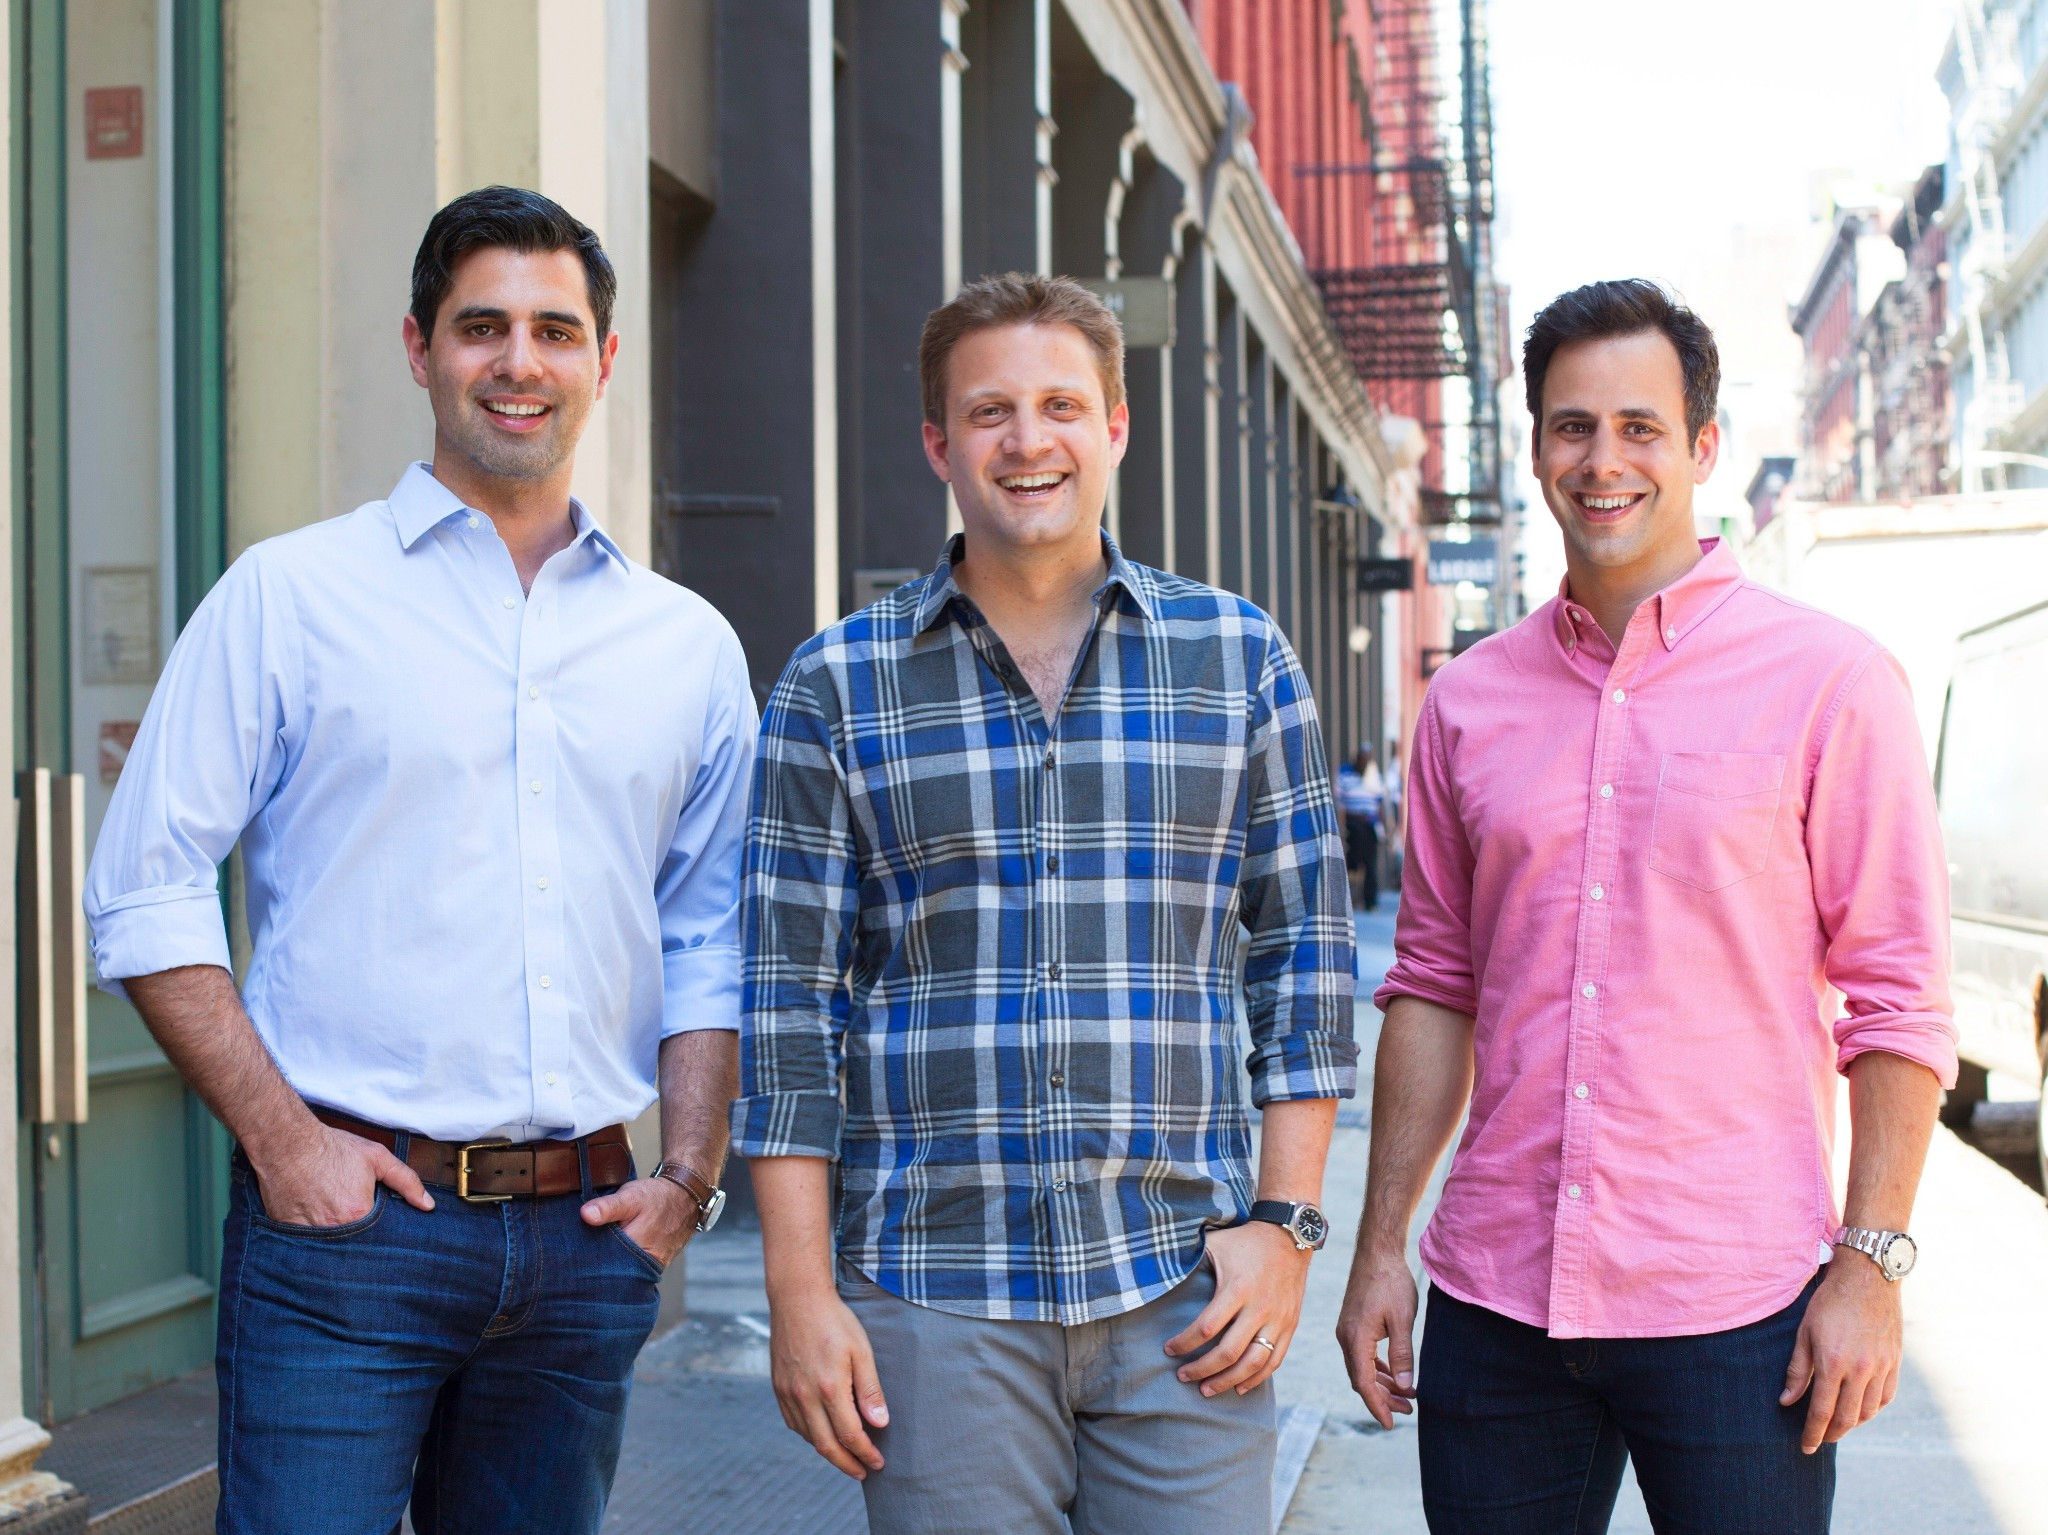 How 3 guys created Blue Apron, a $2 billion recipe-delivery business with 2,500 employees, in 36 months